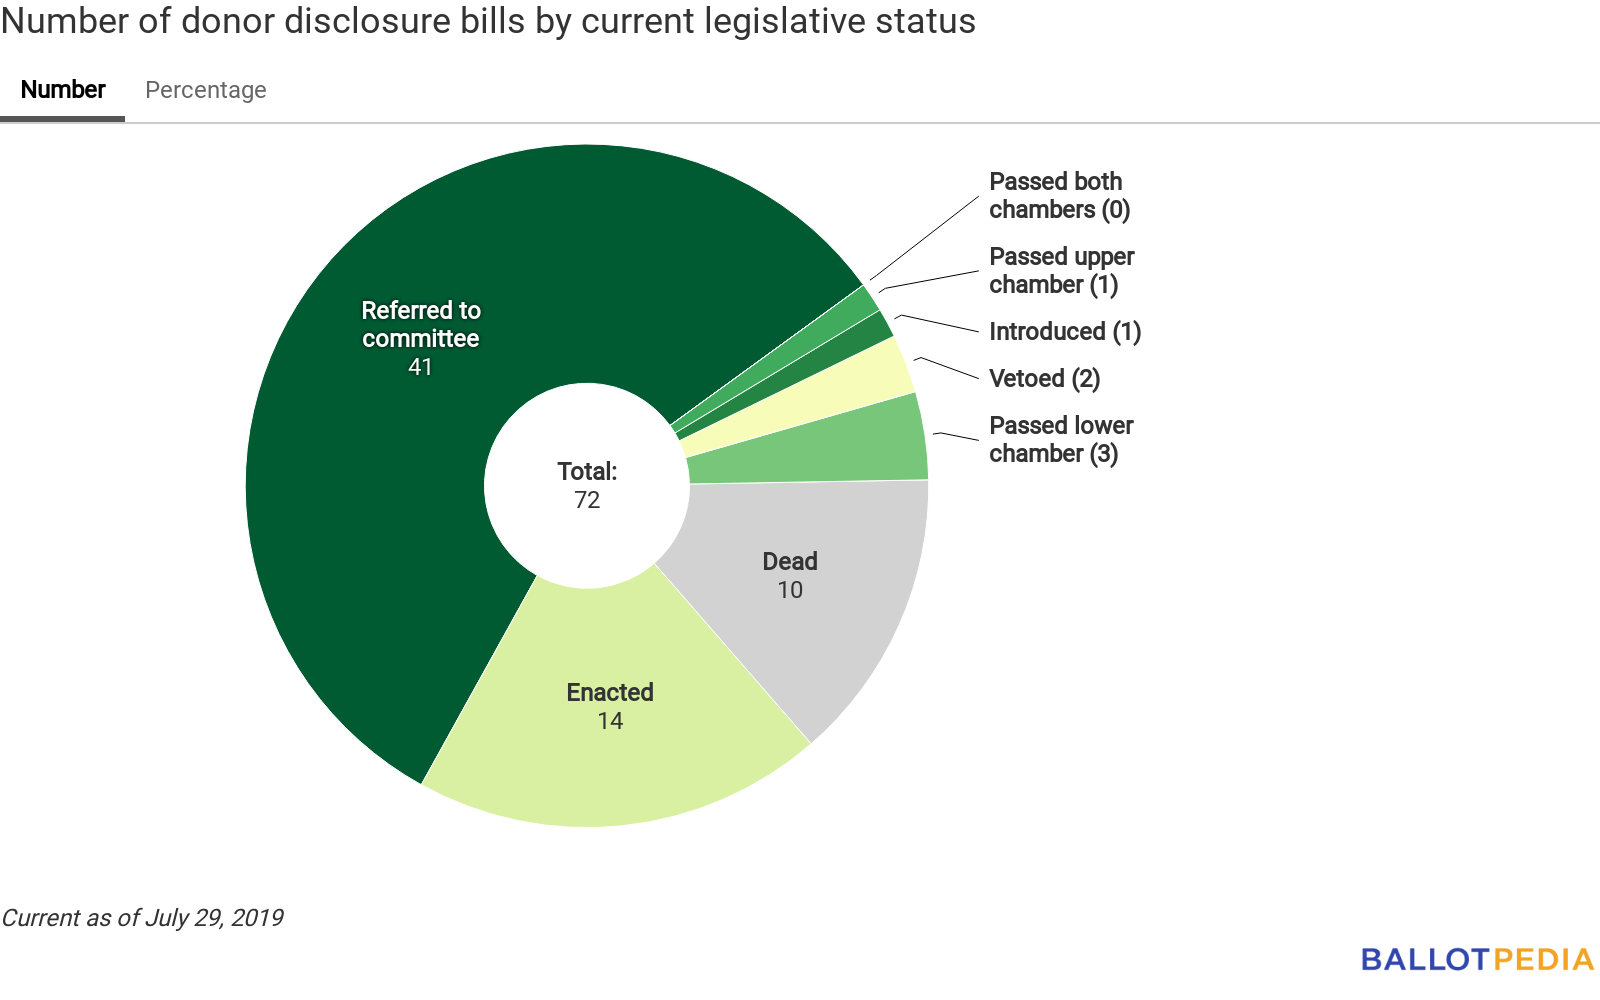 Number of relevant bills by current legislative status